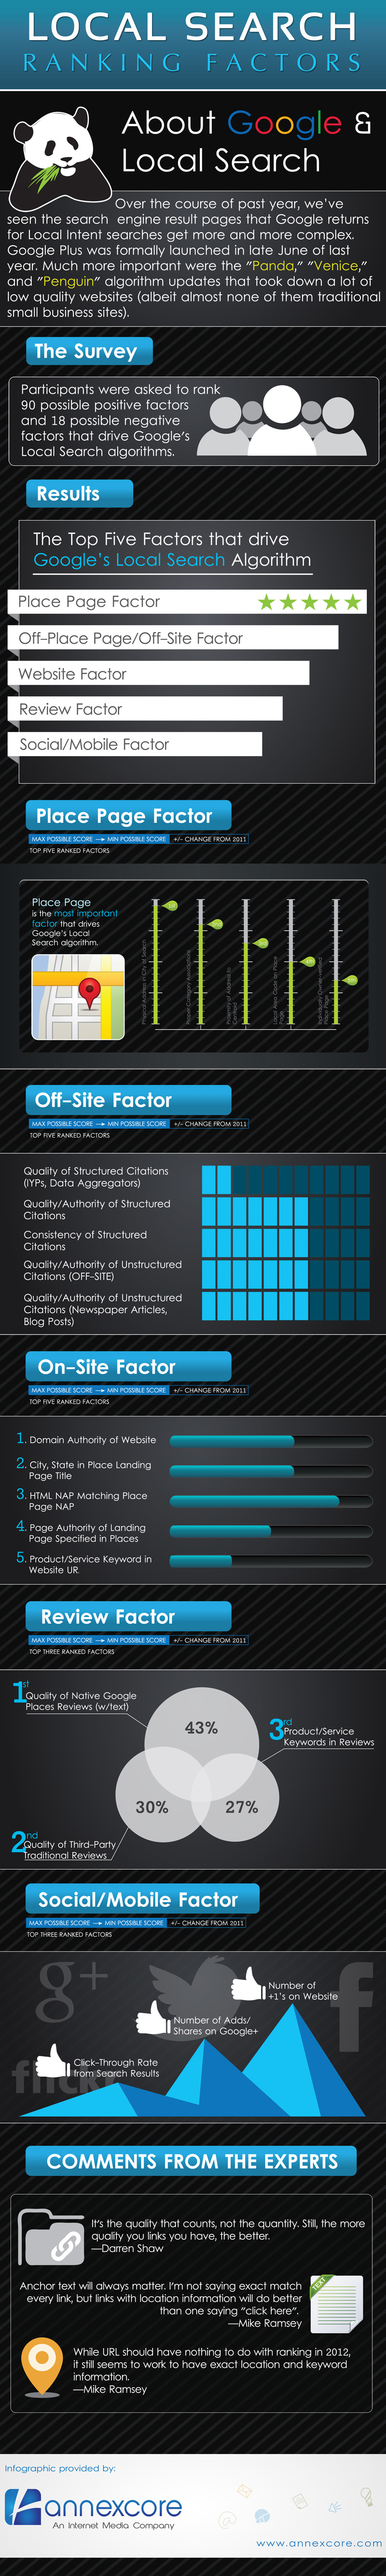 Local-Search-Ranking-Infographic-AnnexCore-infographic-plaza